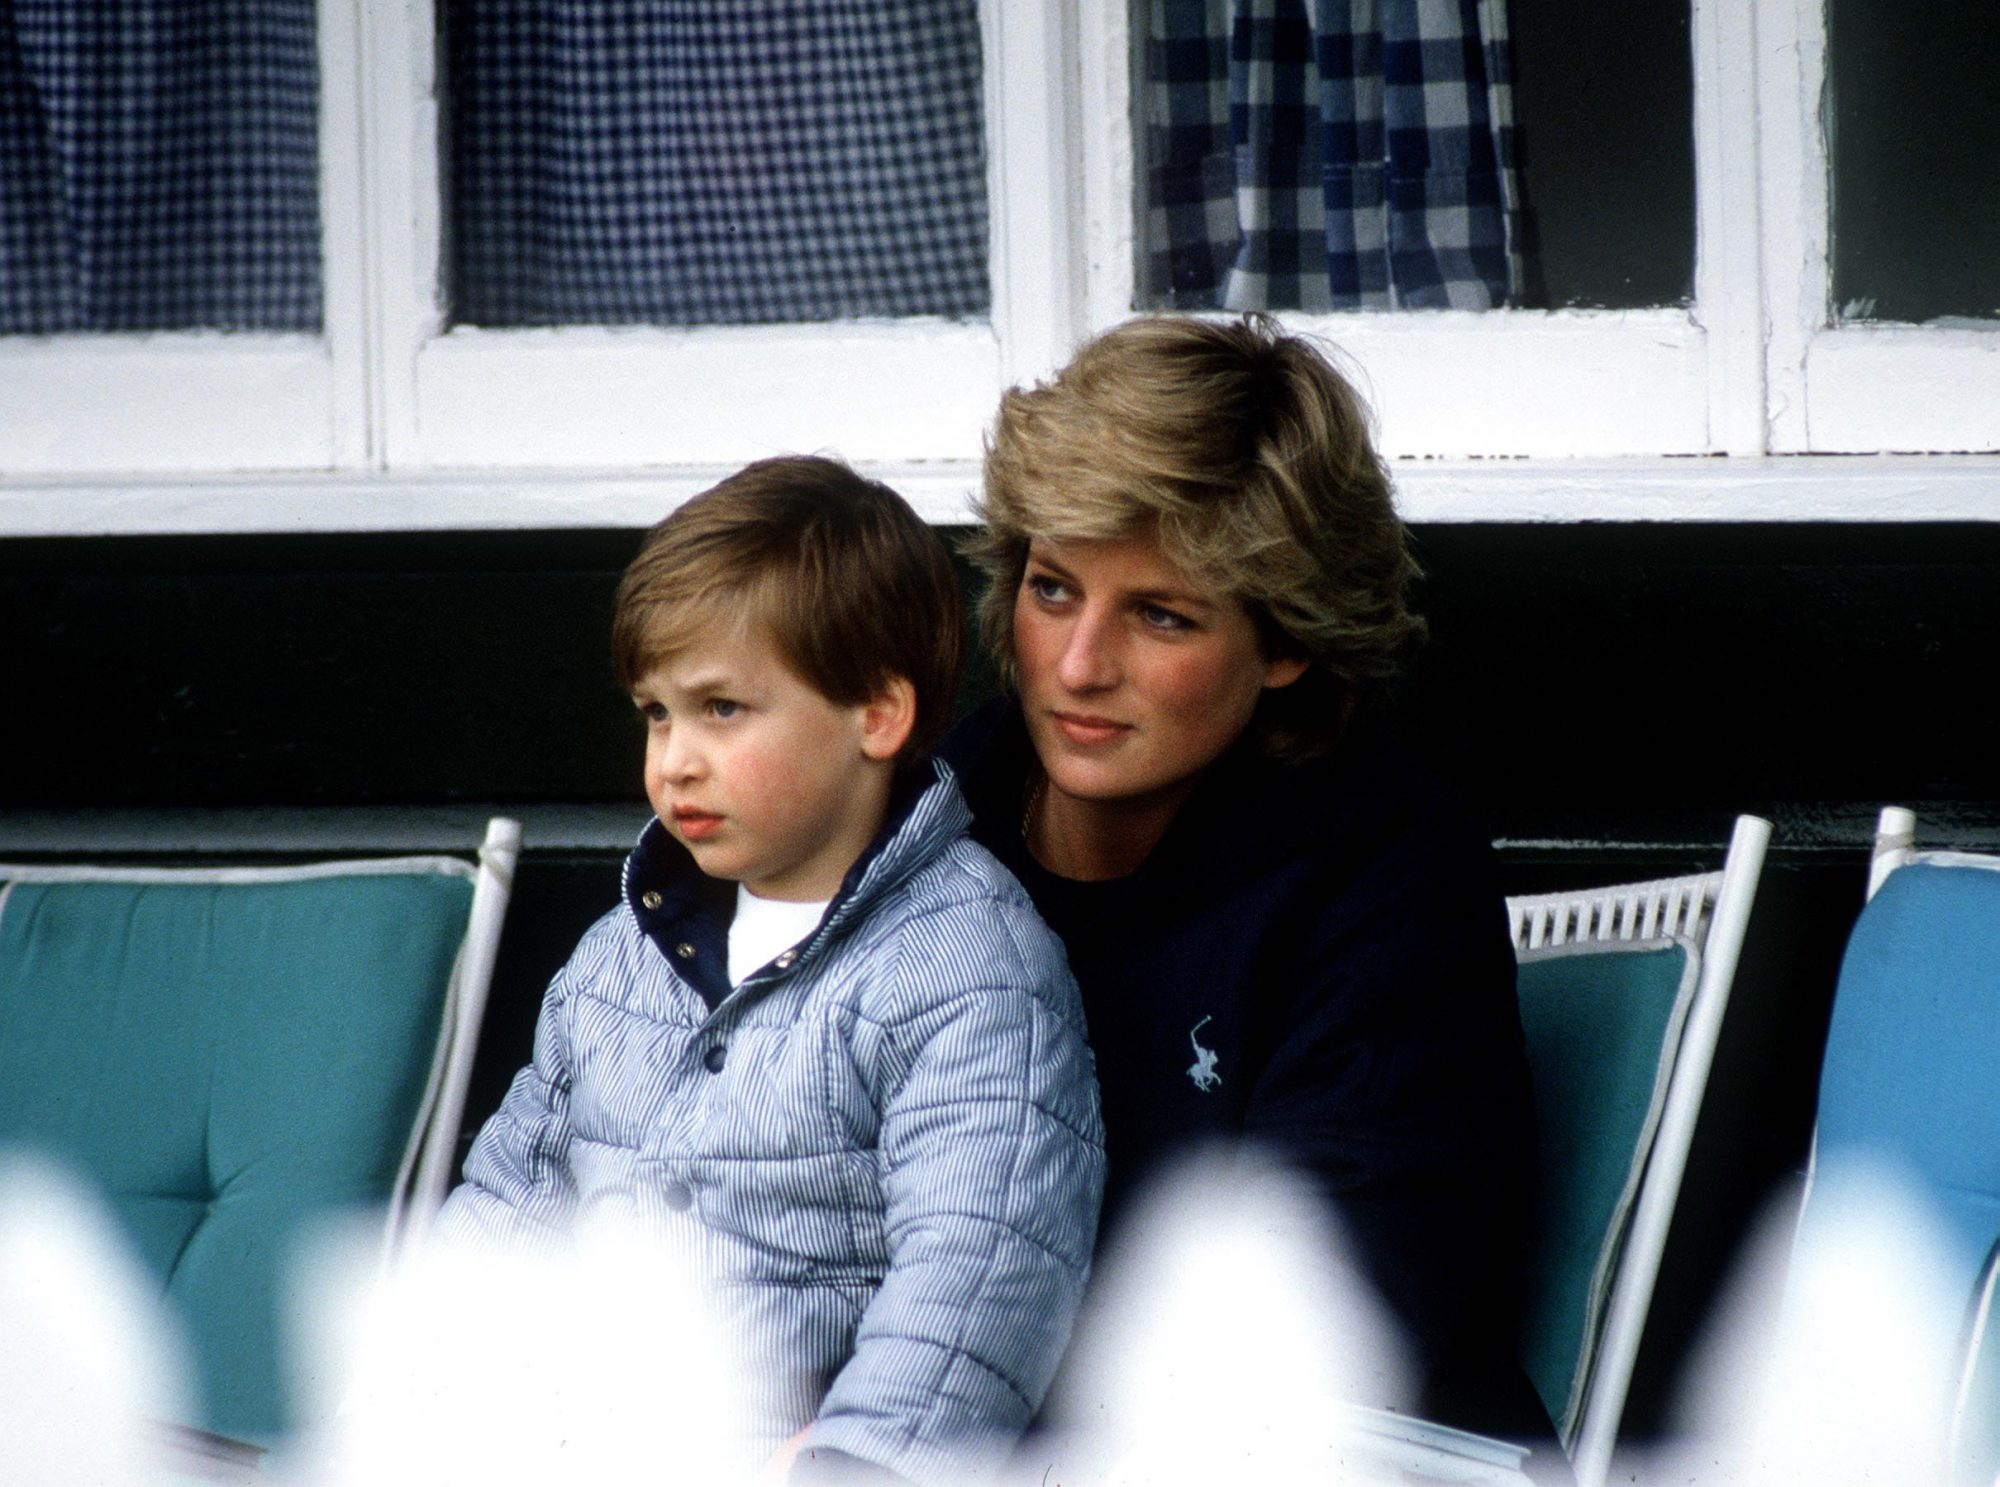 Princesa Diana, Principe WIlliam